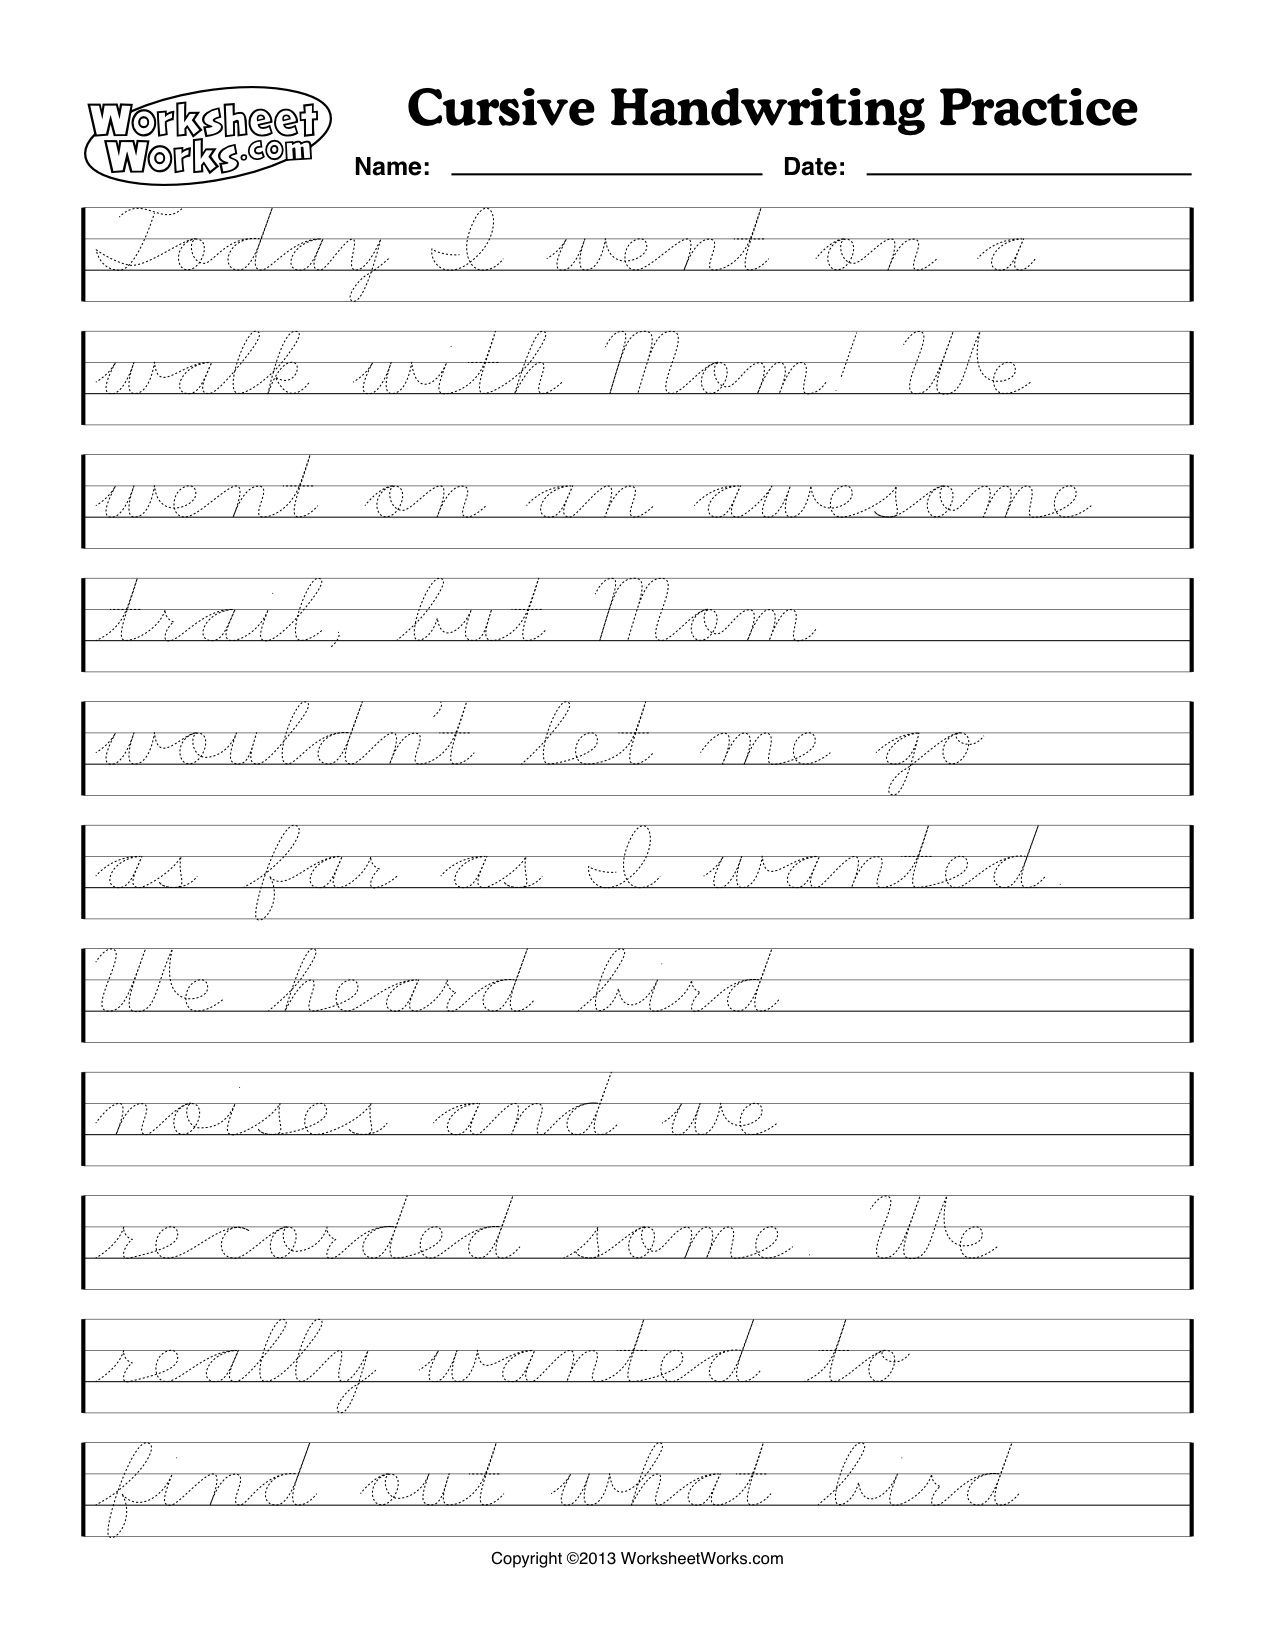 Worksheets Custom Cursive Worksheets cursive handwriting worksheets writing worksheet one word english pic 18